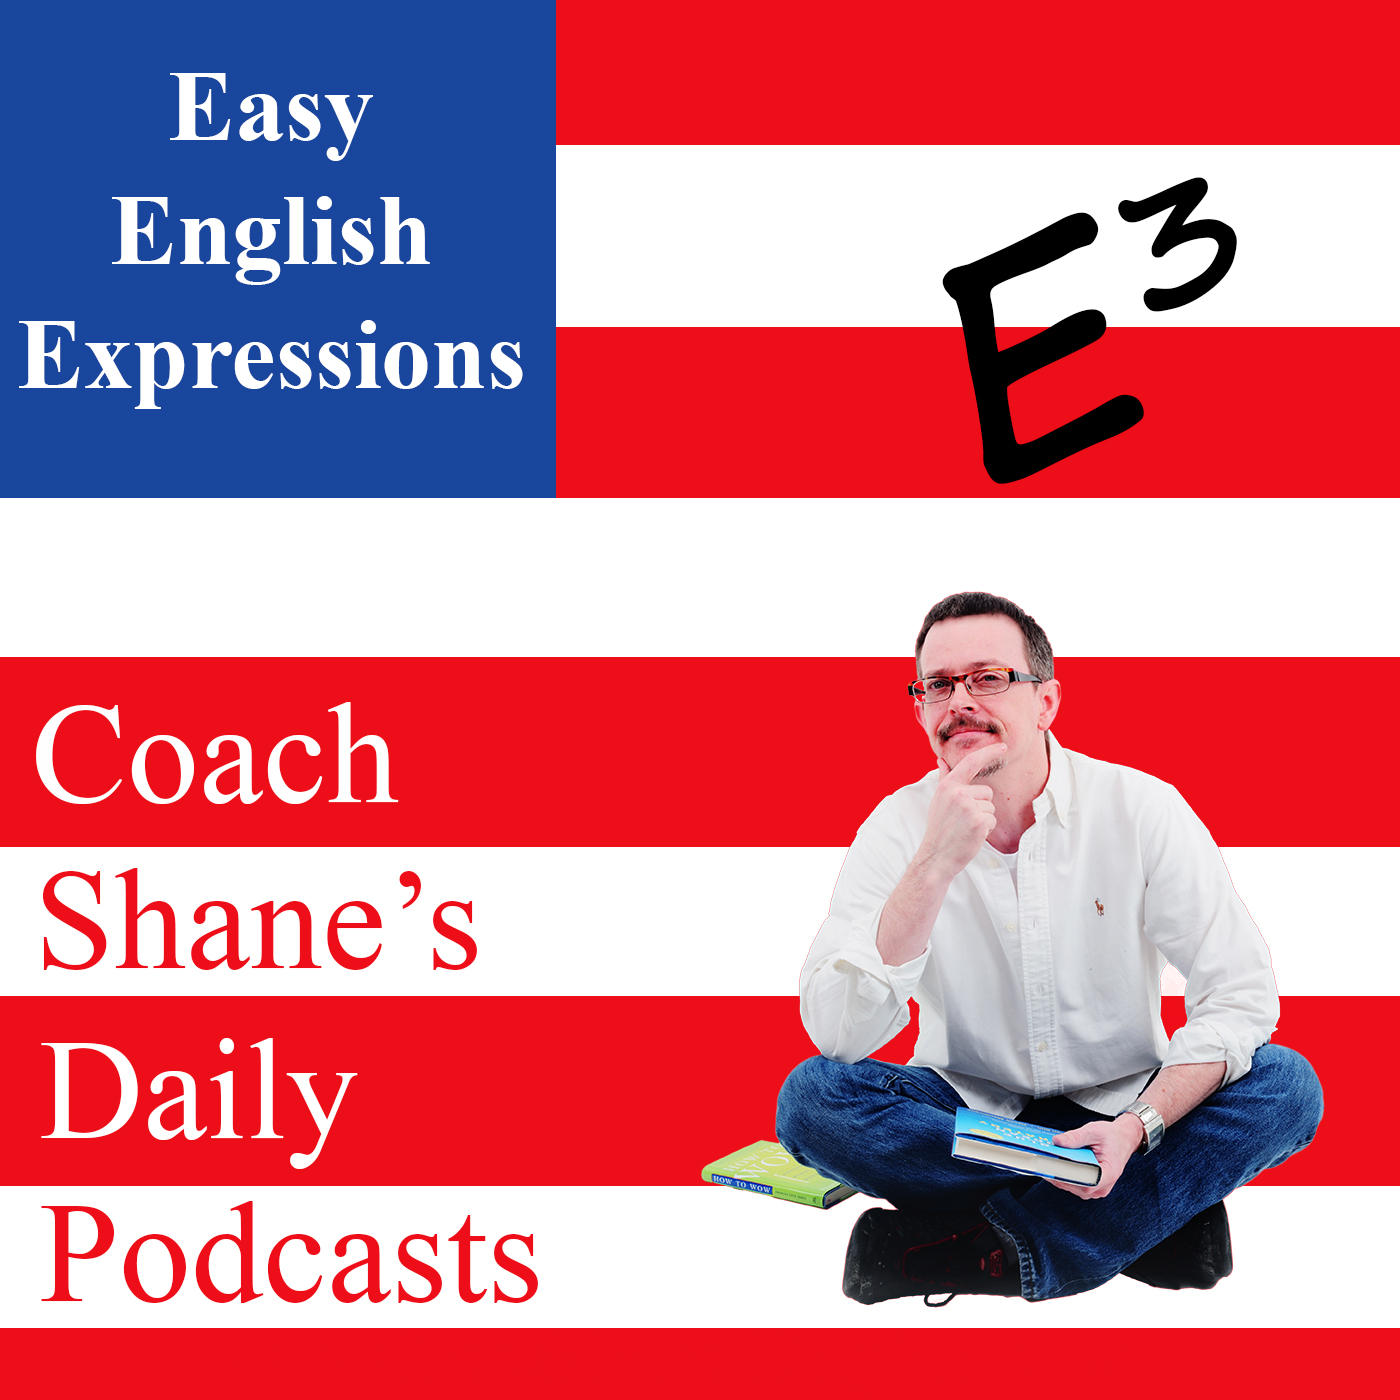 59 Daily Easy English Expression PODCAST—I'm sticking to my guns!